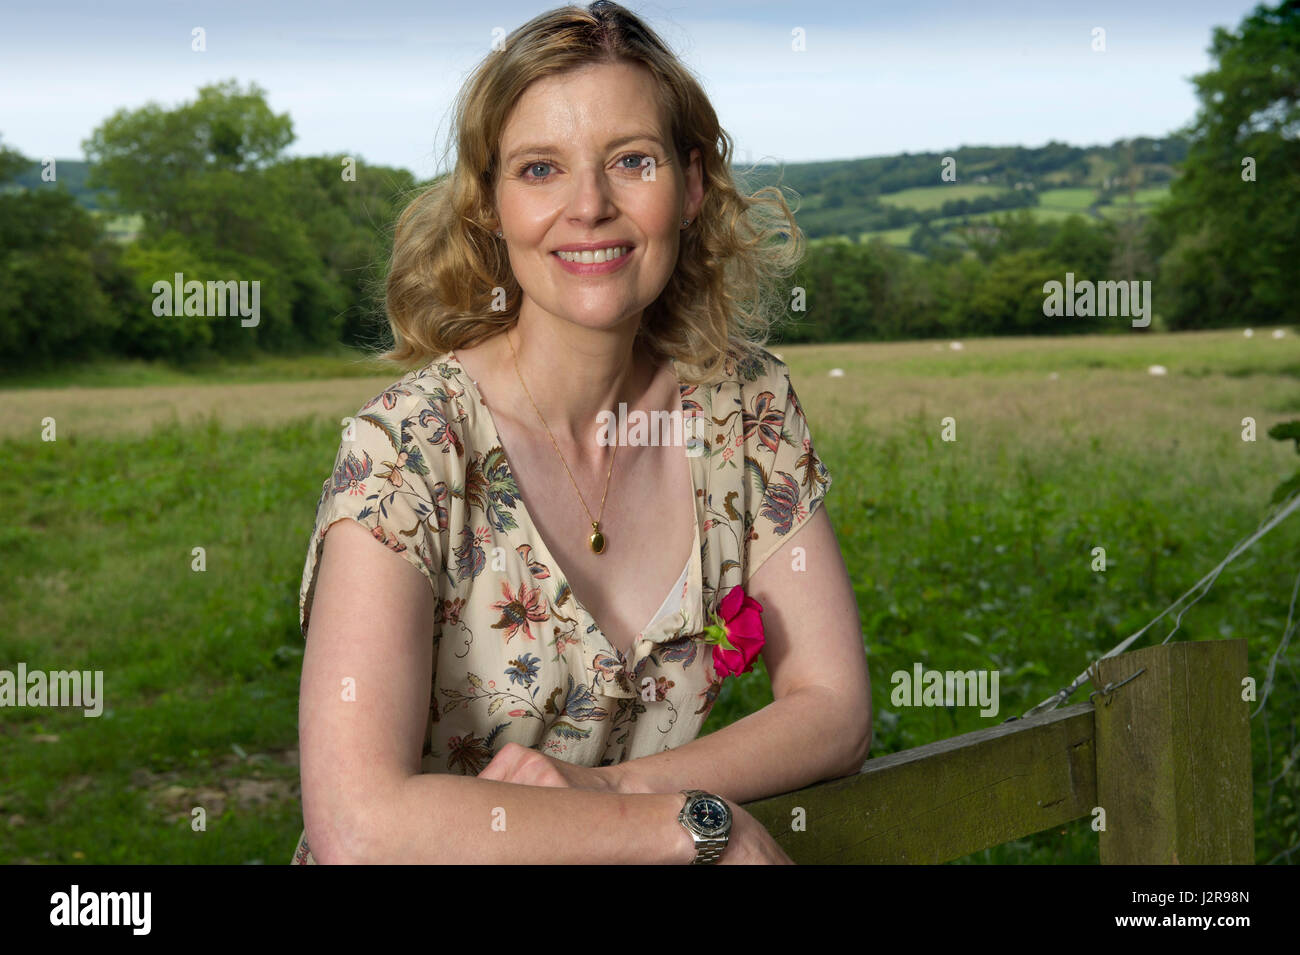 Lucy Akhurst at her home, Oxenpark Farm, Hemyock, Devonshire, UK - Stock Image